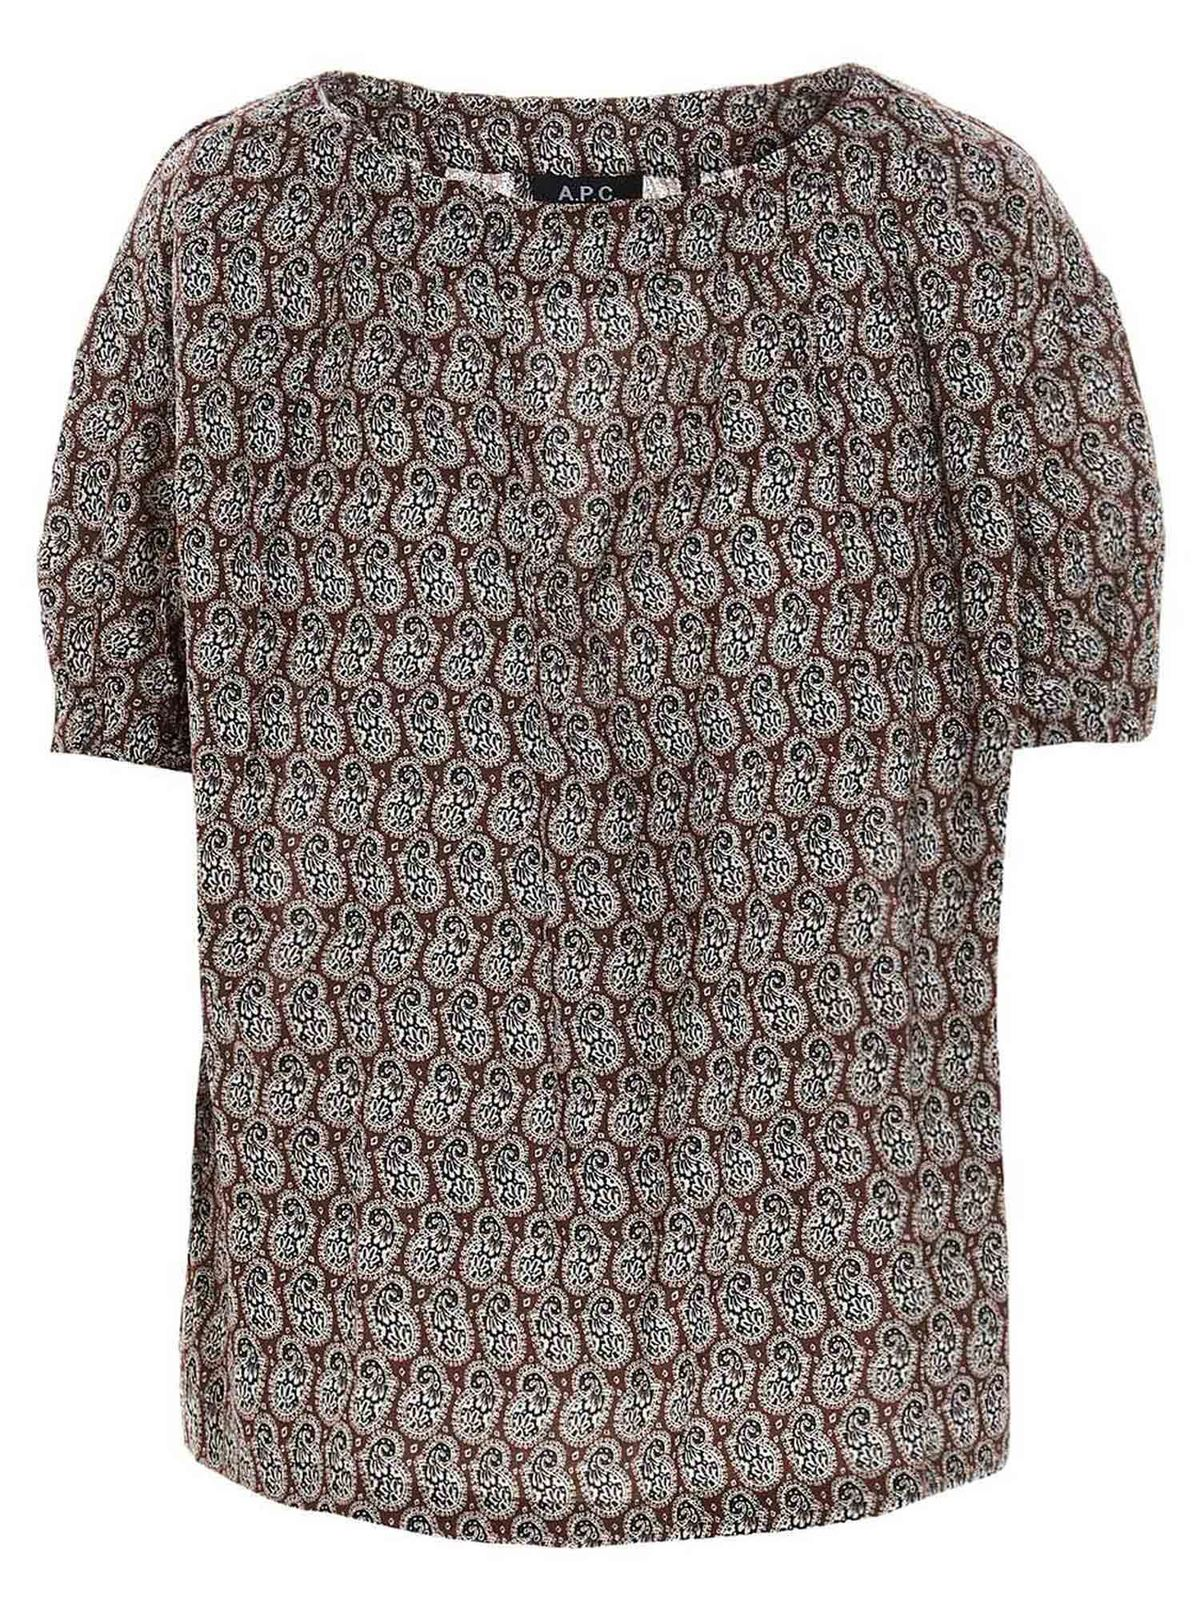 A.p.c. Cottons LIZA BLOUSE IN NUT BROWN